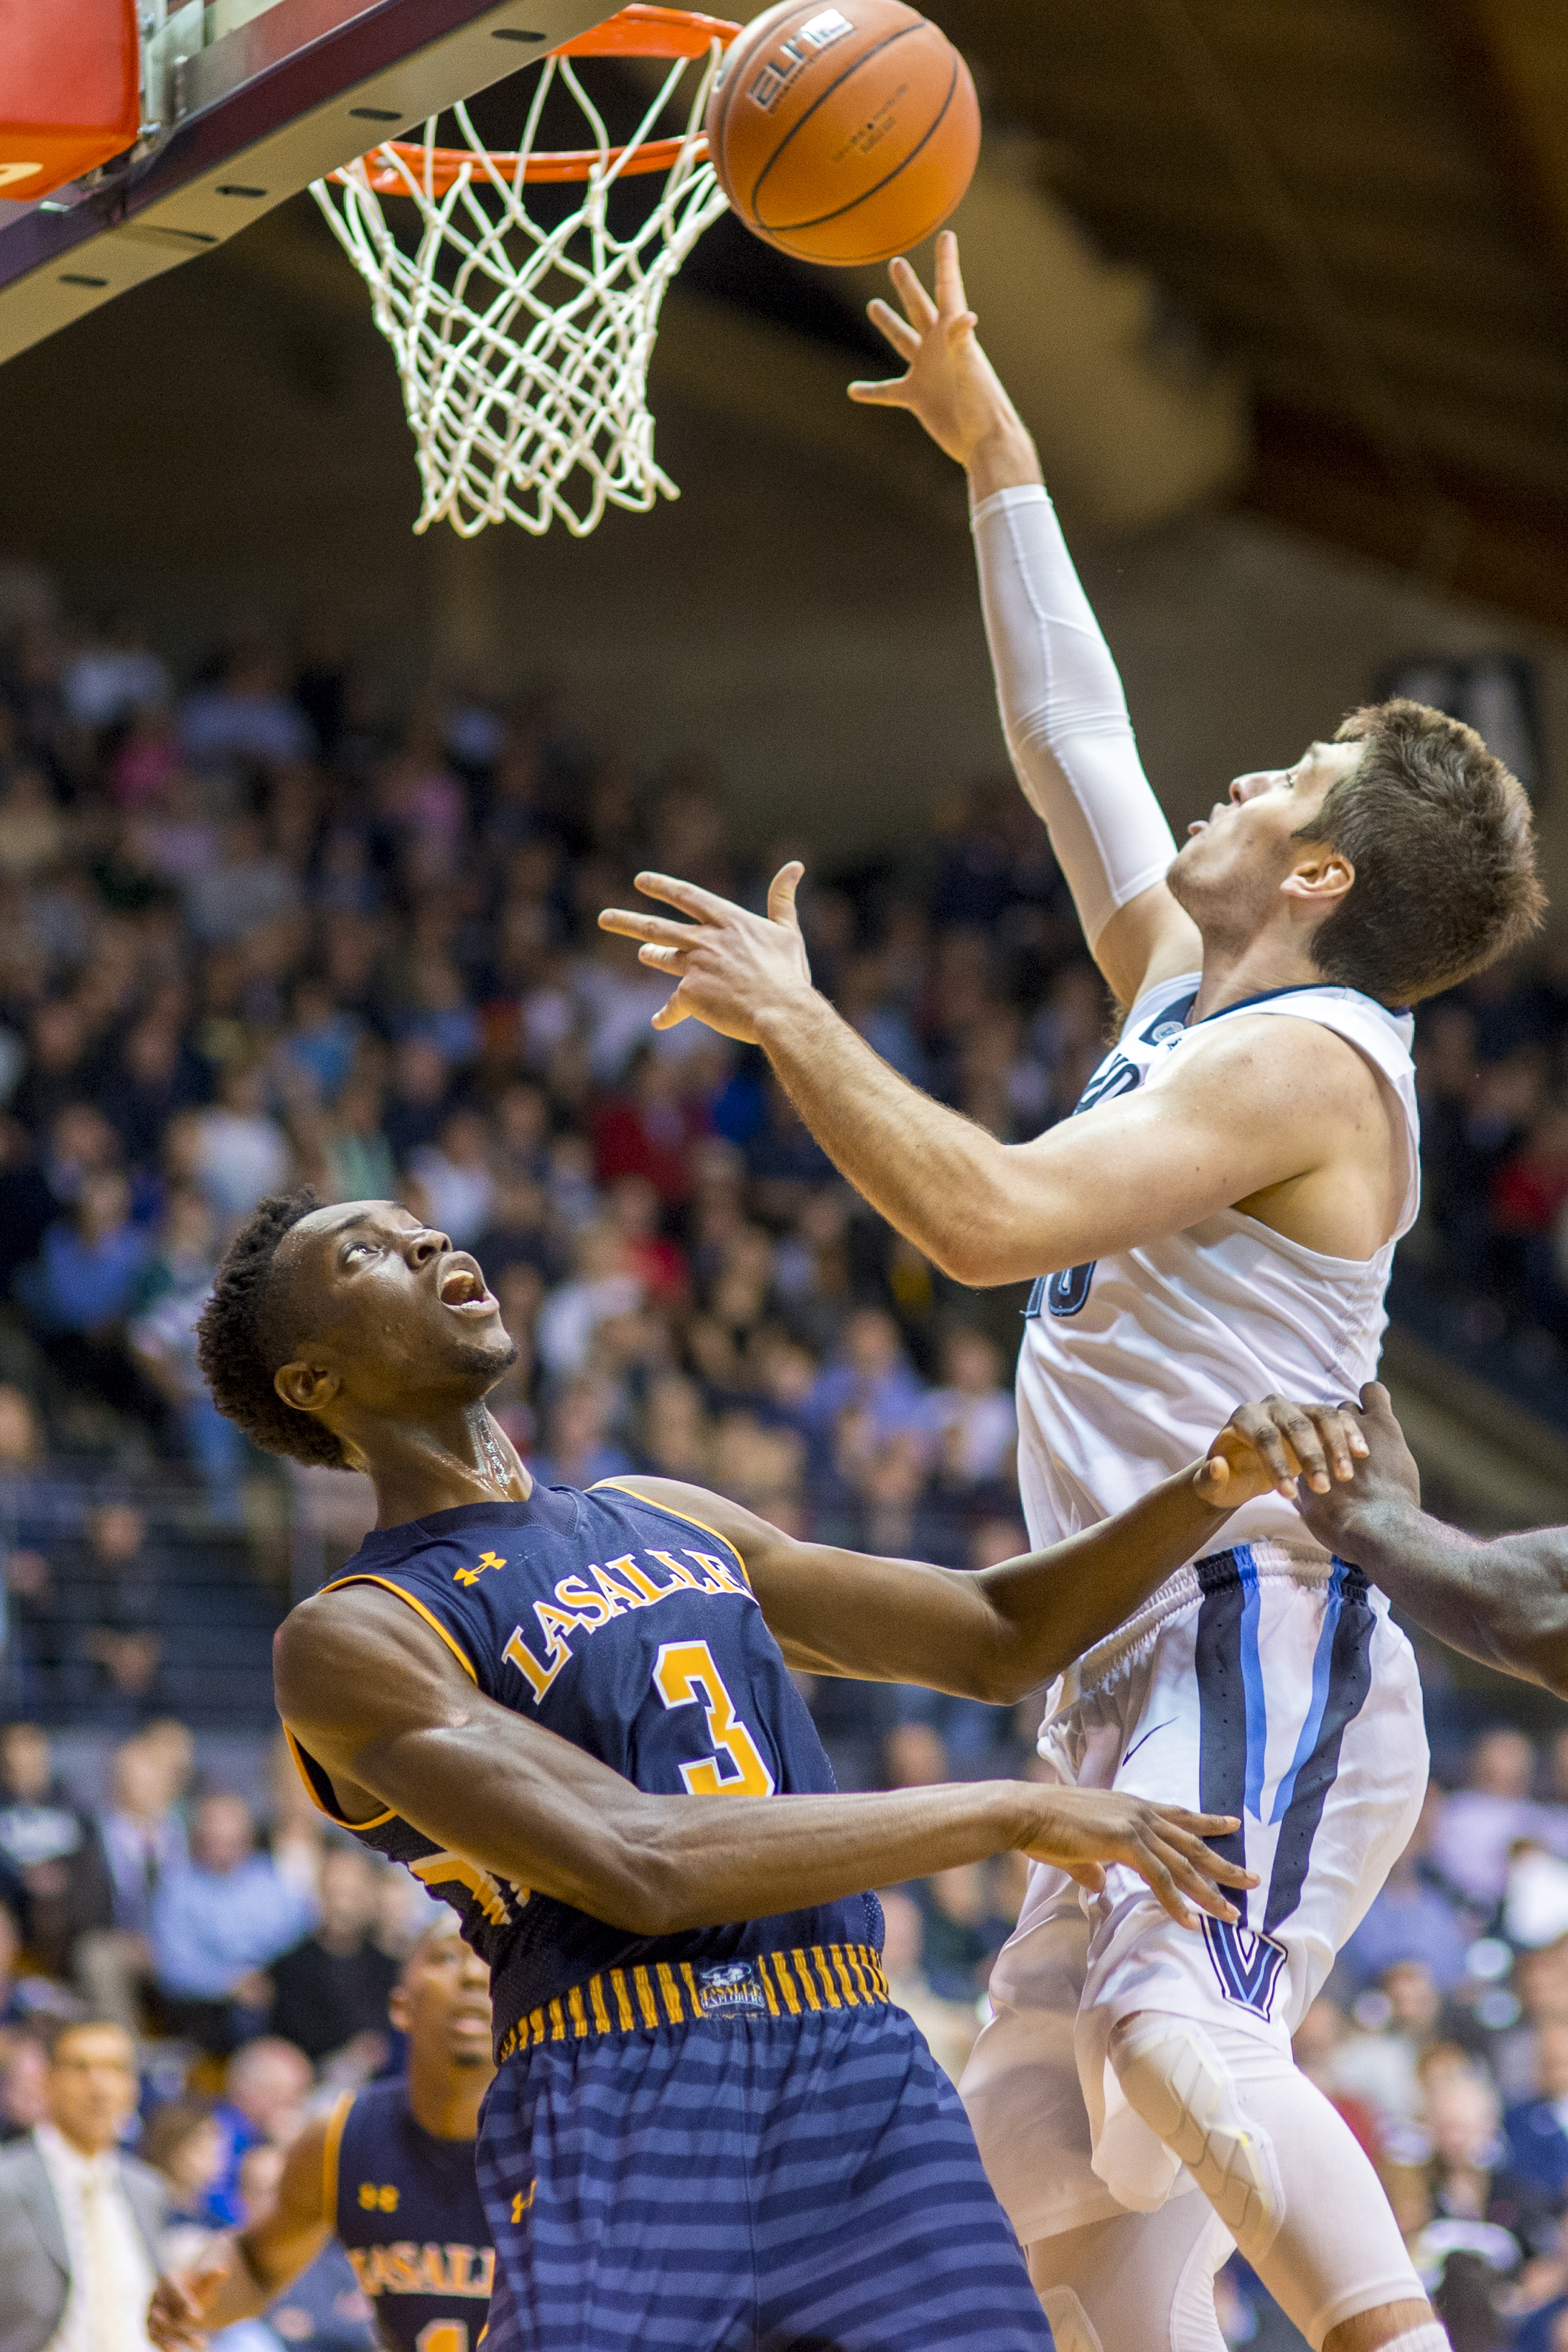 13 December 2015: Villanova Wildcats guard Ryan Arcidiacono (15) lofts his throw over the head of La Salle Explorers guard Cleon Roberts (3) during the NCAA basketball game between the La Salle Explorers and the Villanova Wildcats played at the Pavilion in Villanova, PA. (Photo by Gavin Baker/Icon Sportswire)